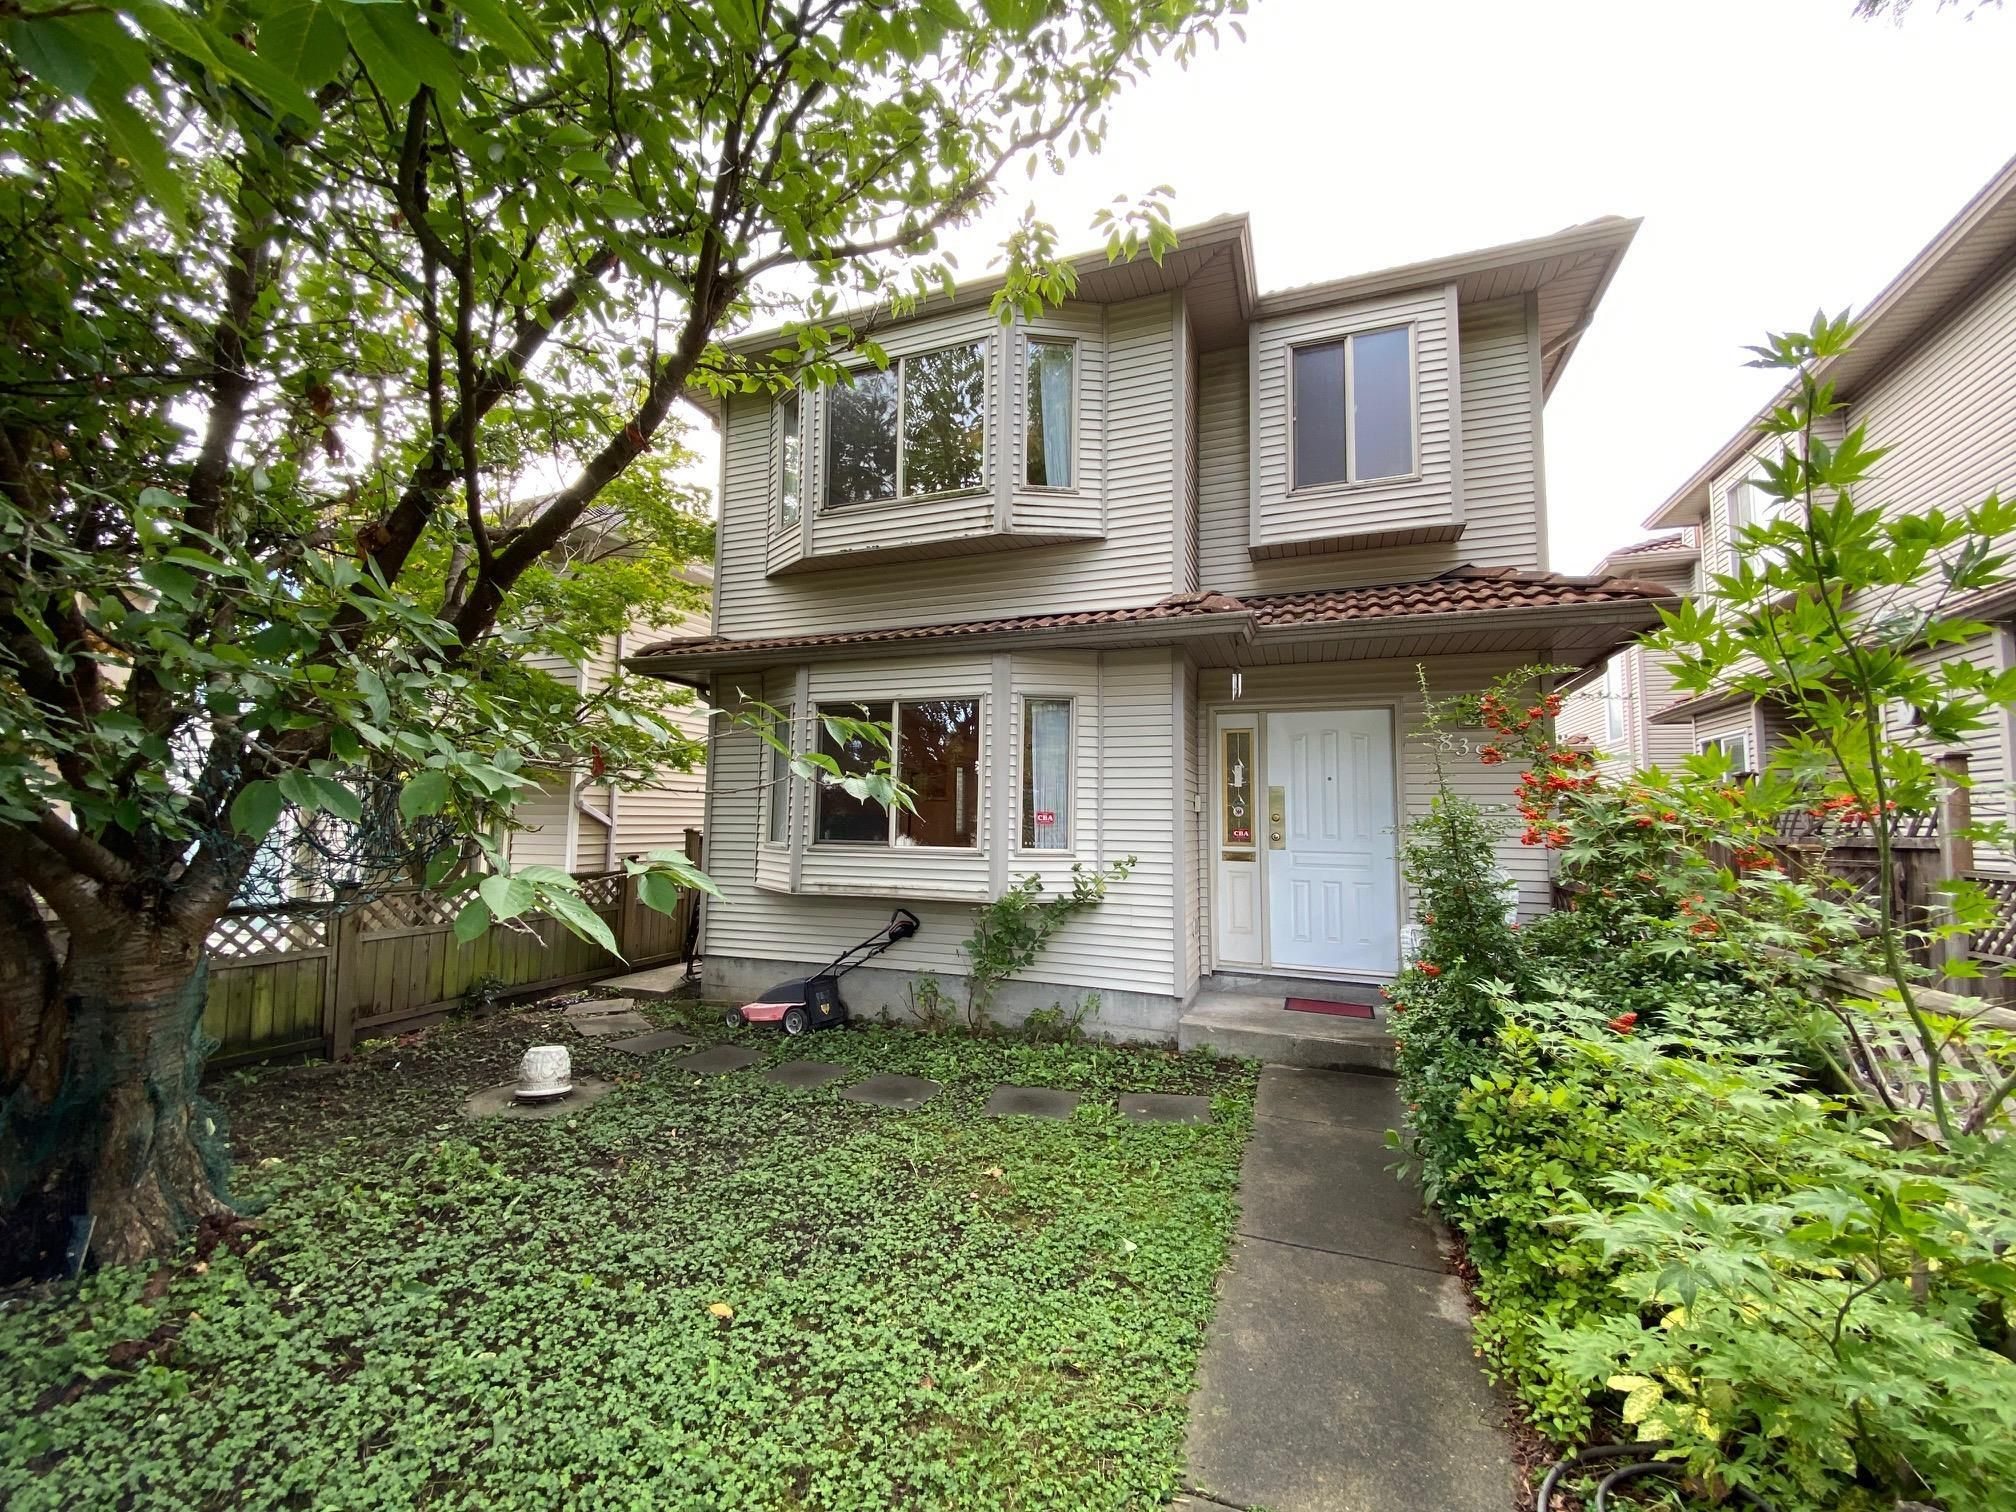 Main Photo: 8399 CARTIER Street in Vancouver: Marpole 1/2 Duplex for sale (Vancouver West)  : MLS®# R2617282